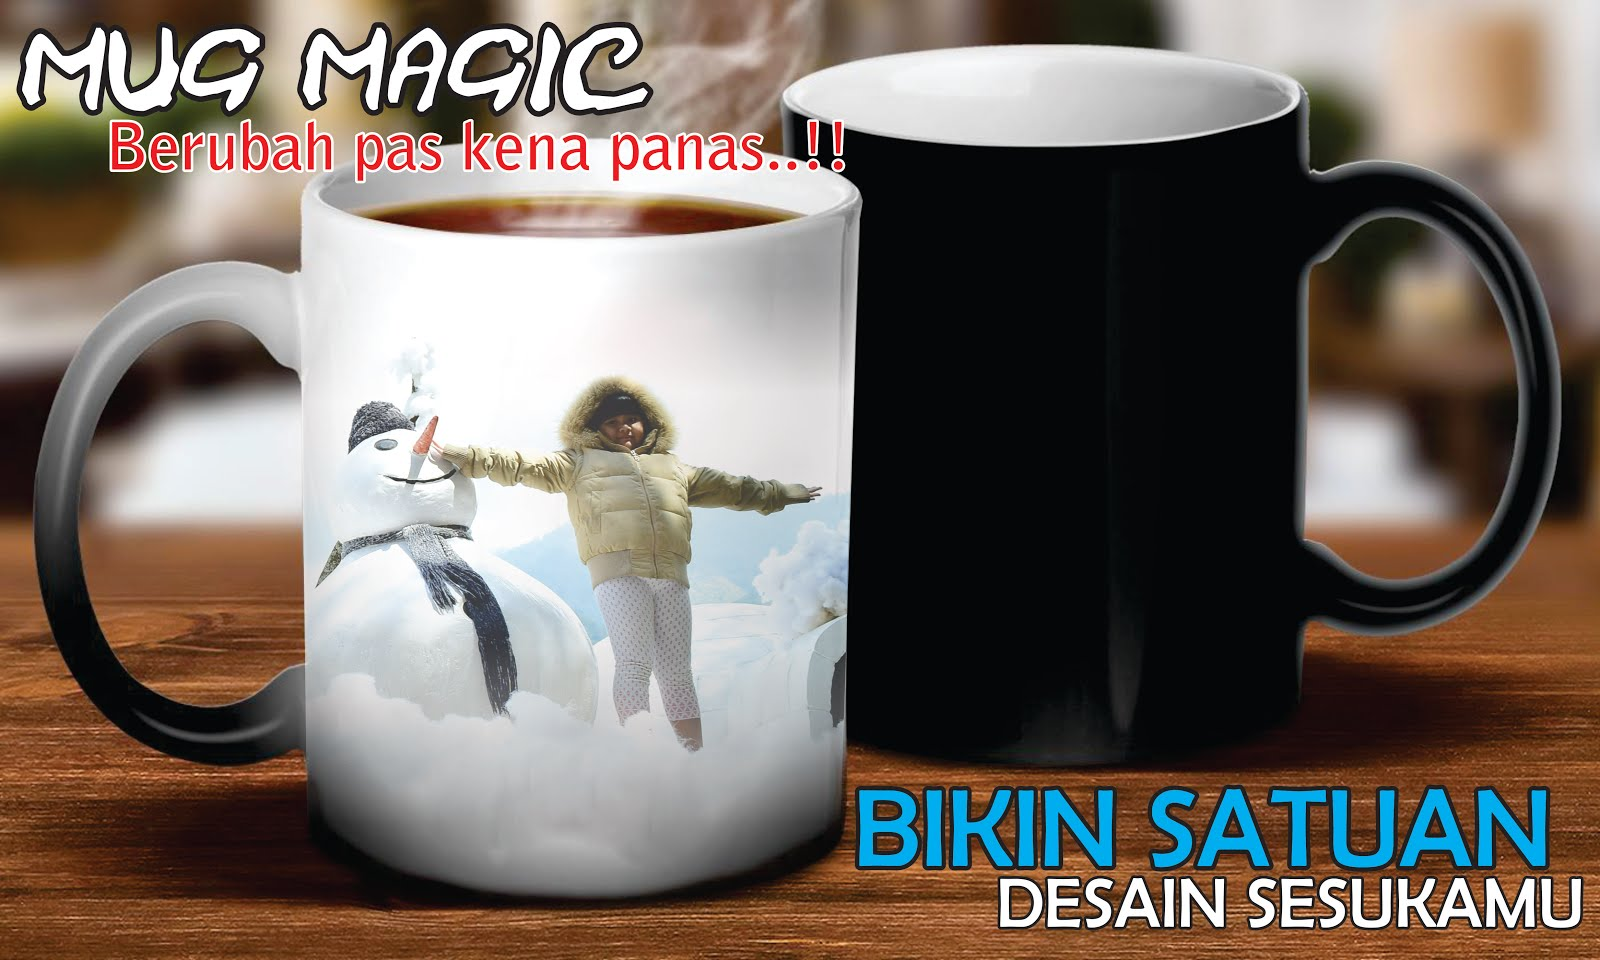 Bikin Mug Magic